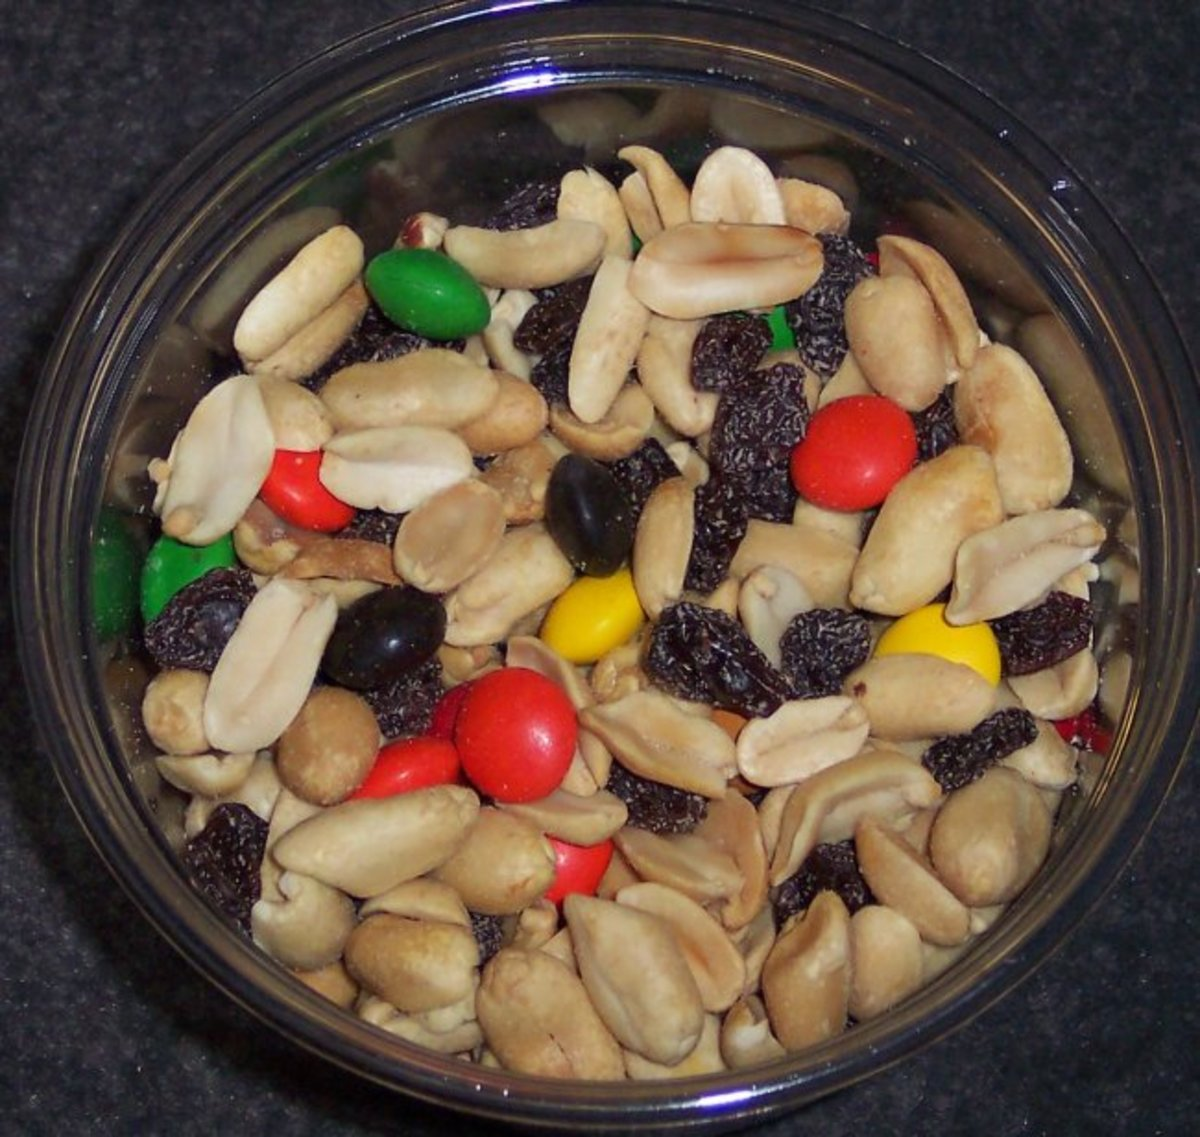 Trail mix is a classic party favorite.